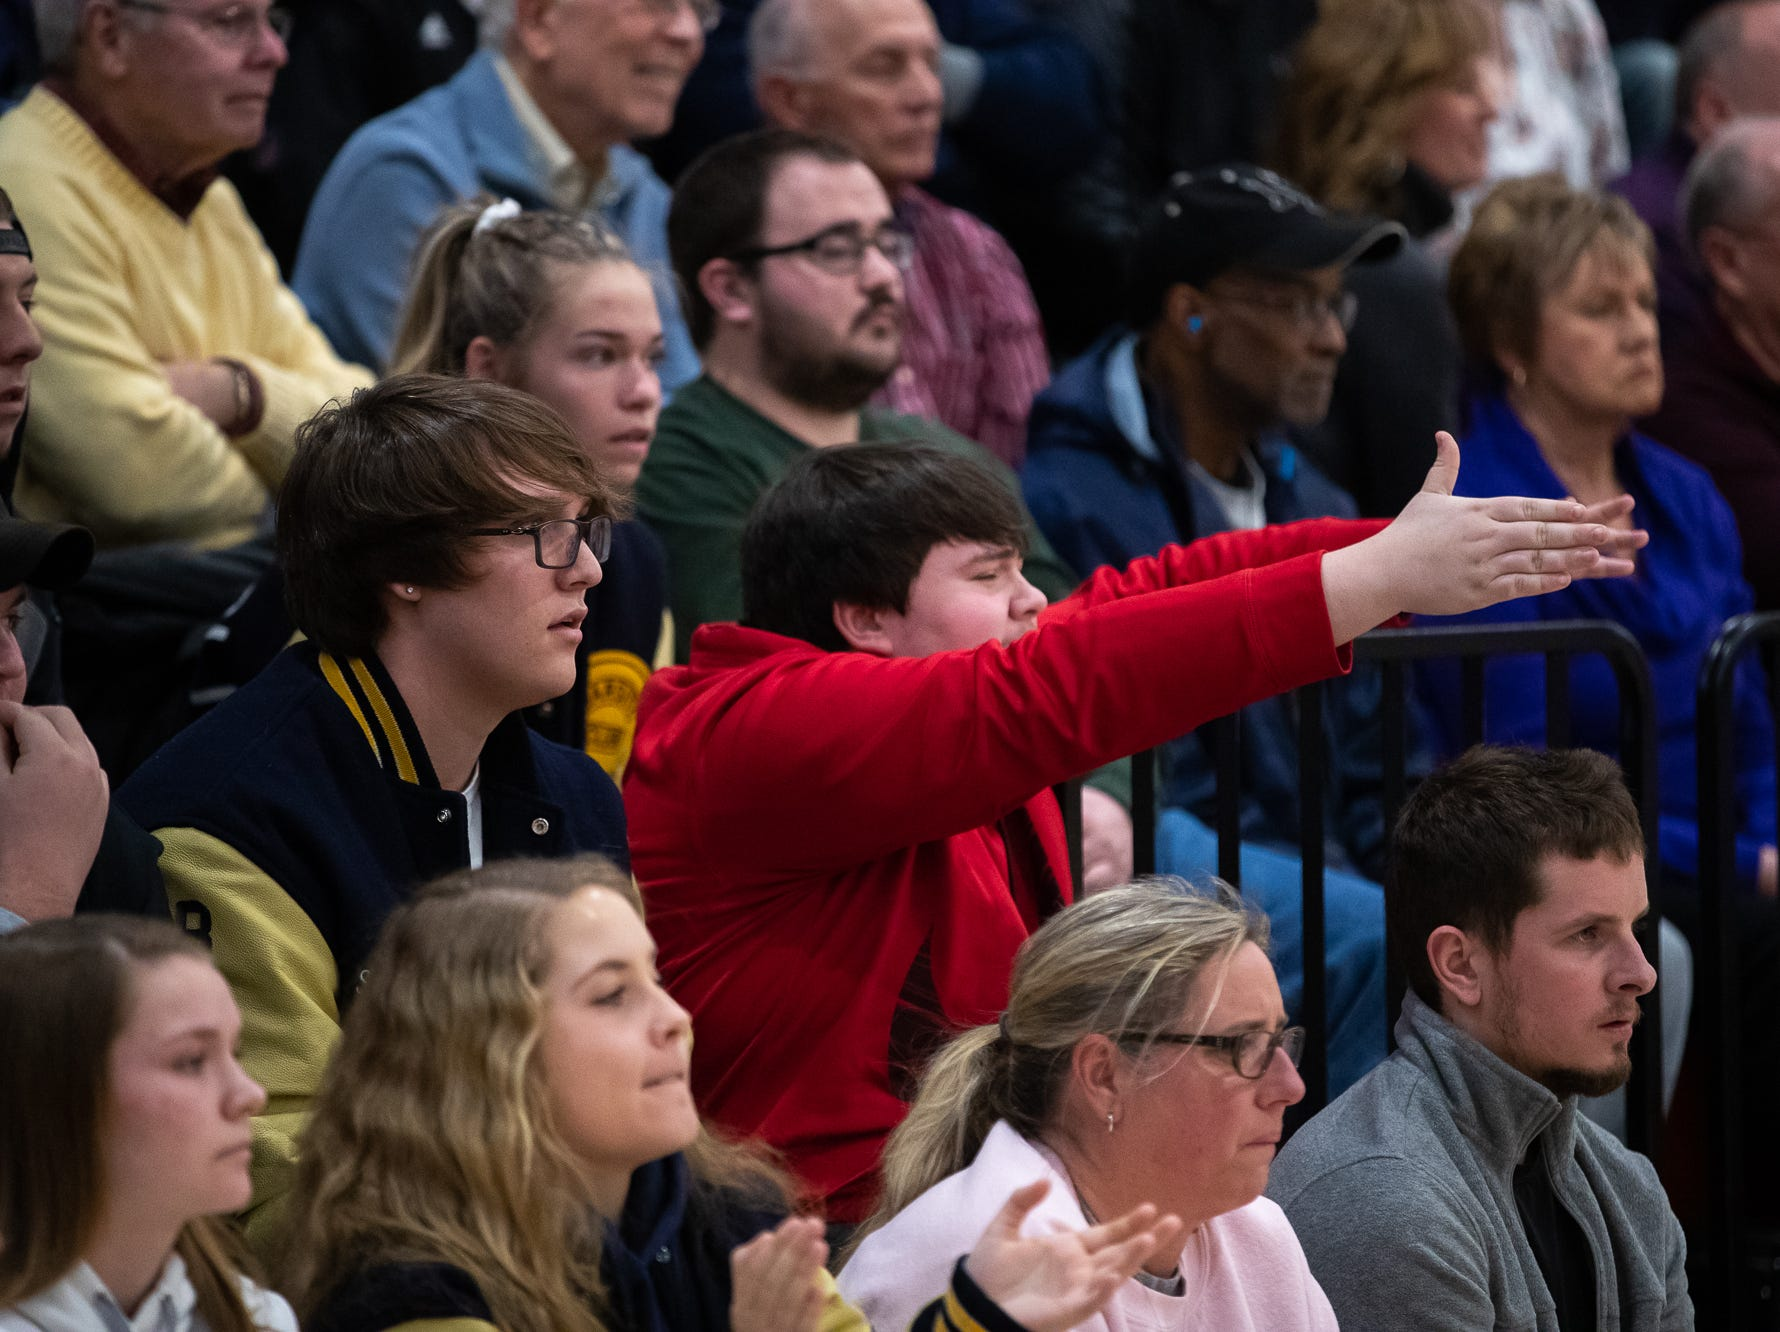 Fans react during the second half of the YAIAA boys' basketball quarterfinals between Littlestown and West York, Saturday, Feb. 9, 2019, at Central York High School. The Littlestown Bolts defeated the West York Bulldogs 73-63.